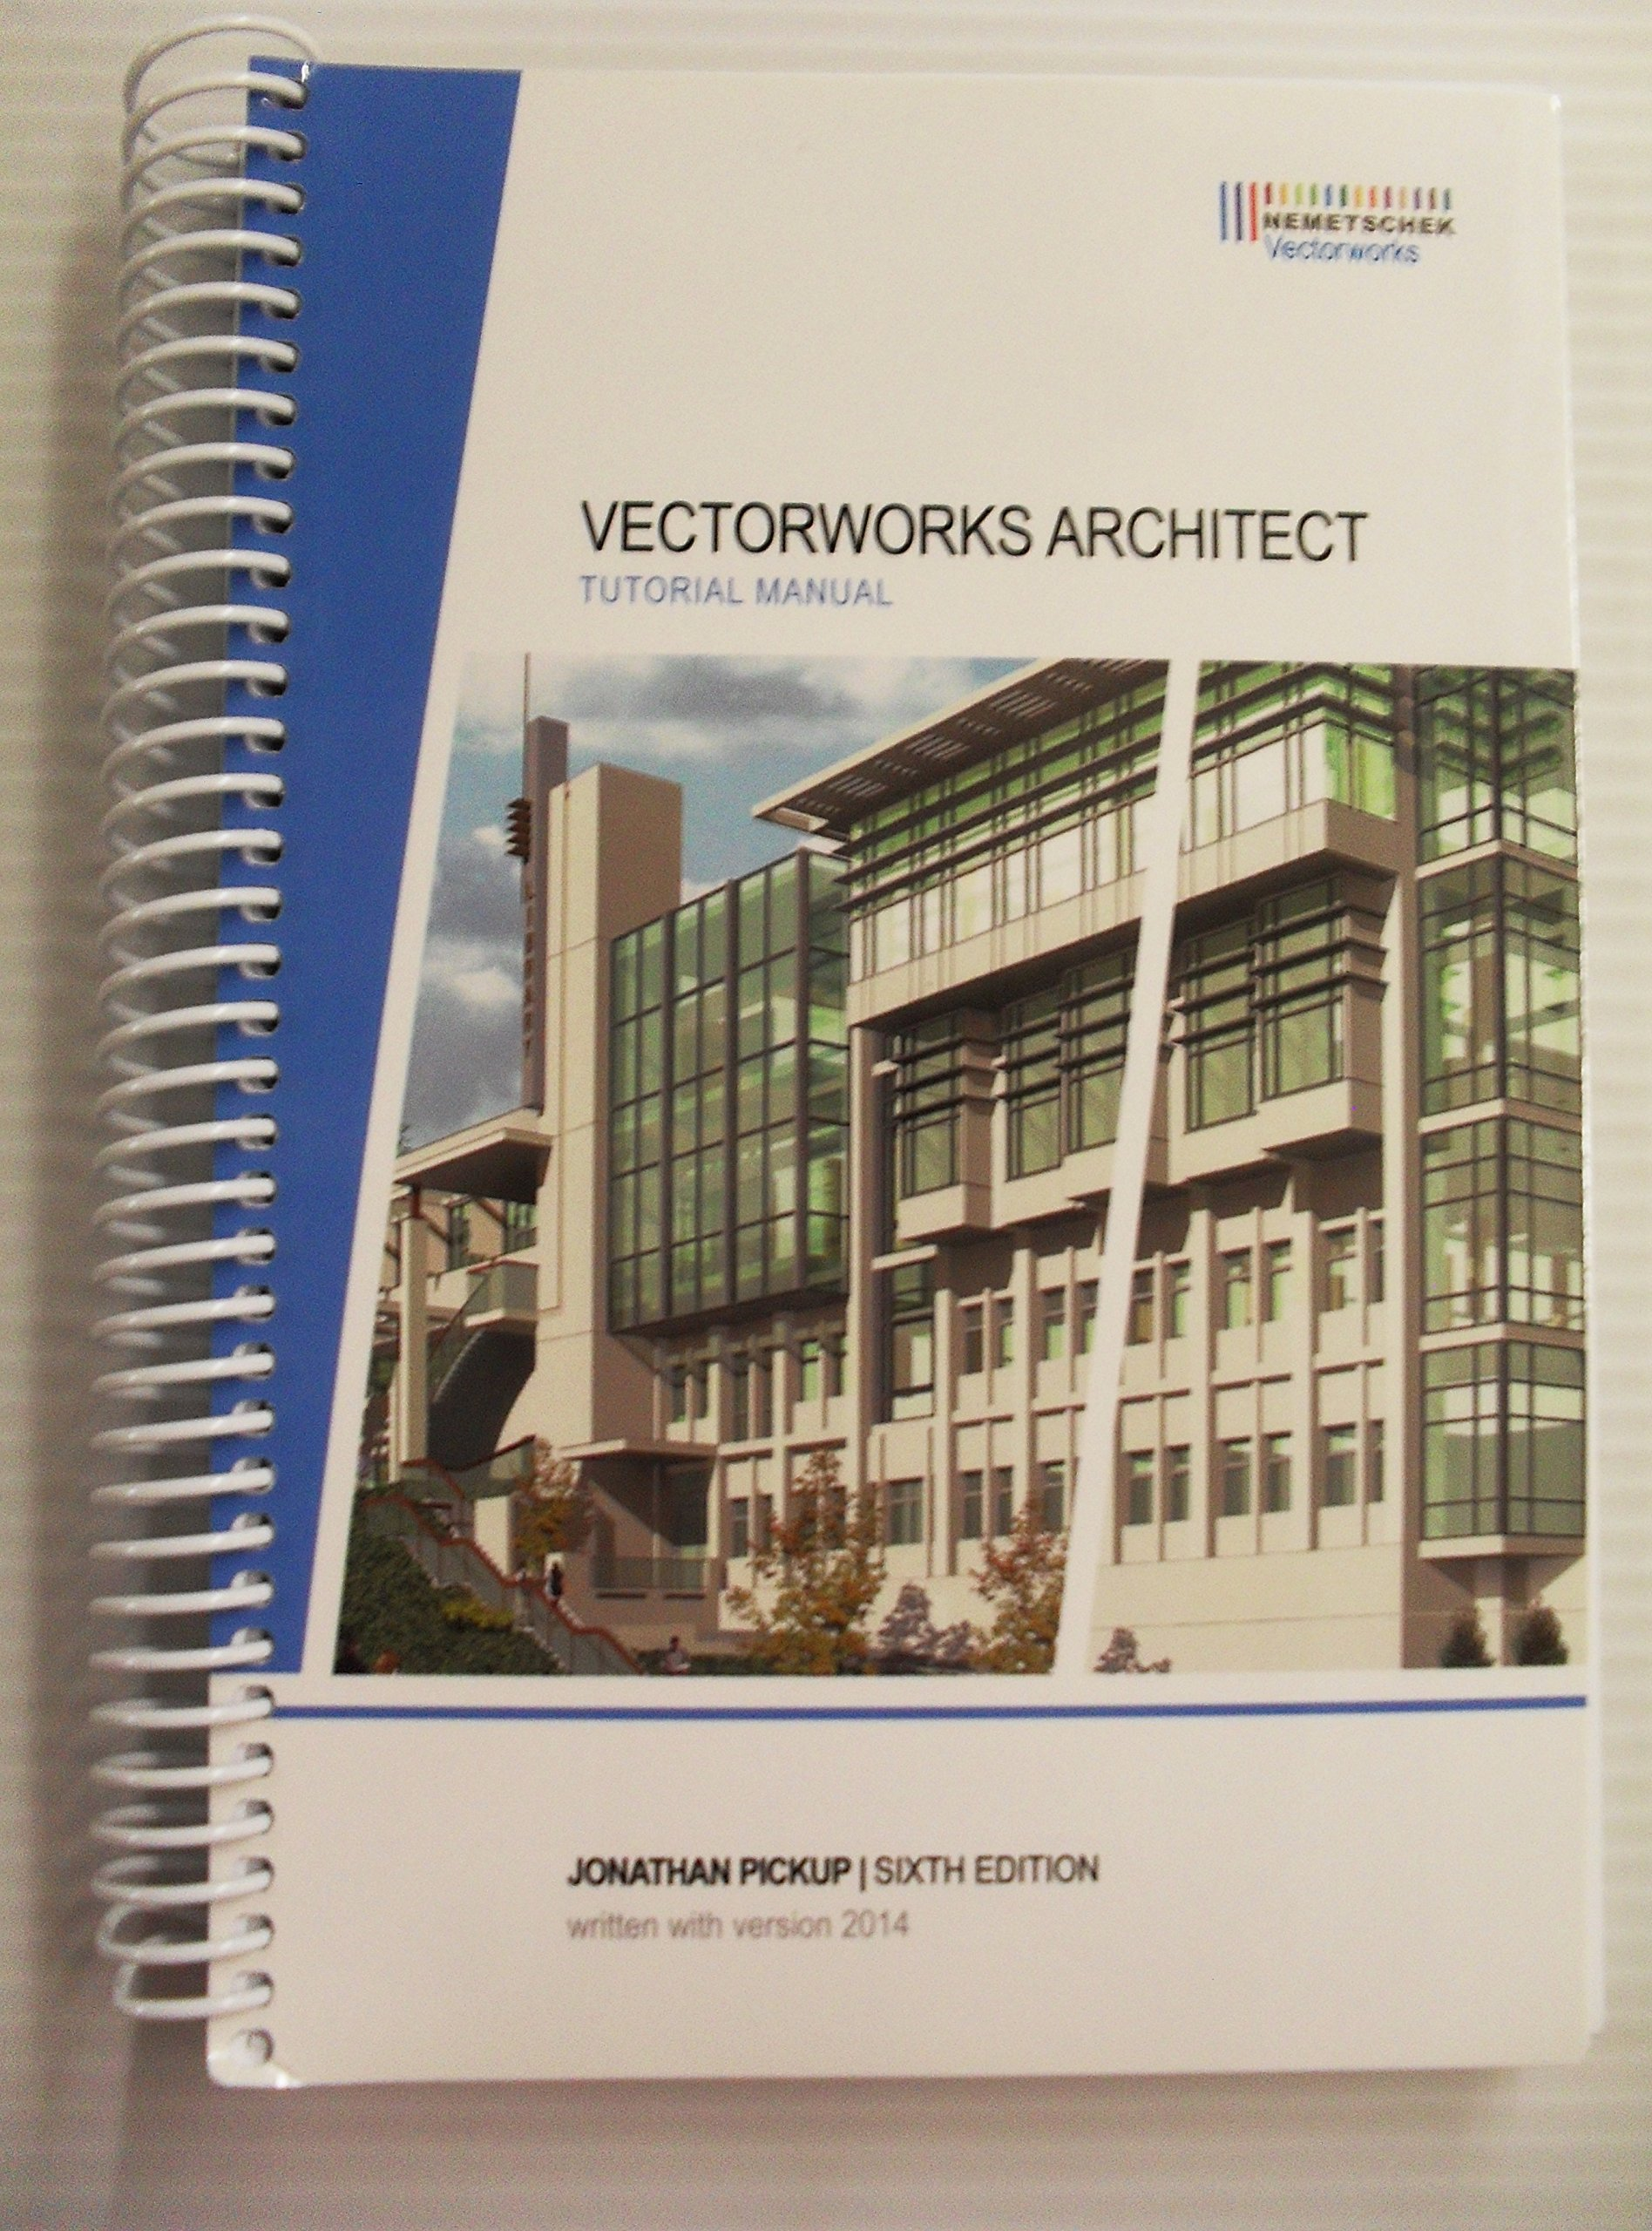 Vectorworks Architect Tutorial Manual, Sixth Edition: Jonathan Pickup:  9781940194066: Amazon.com: Books